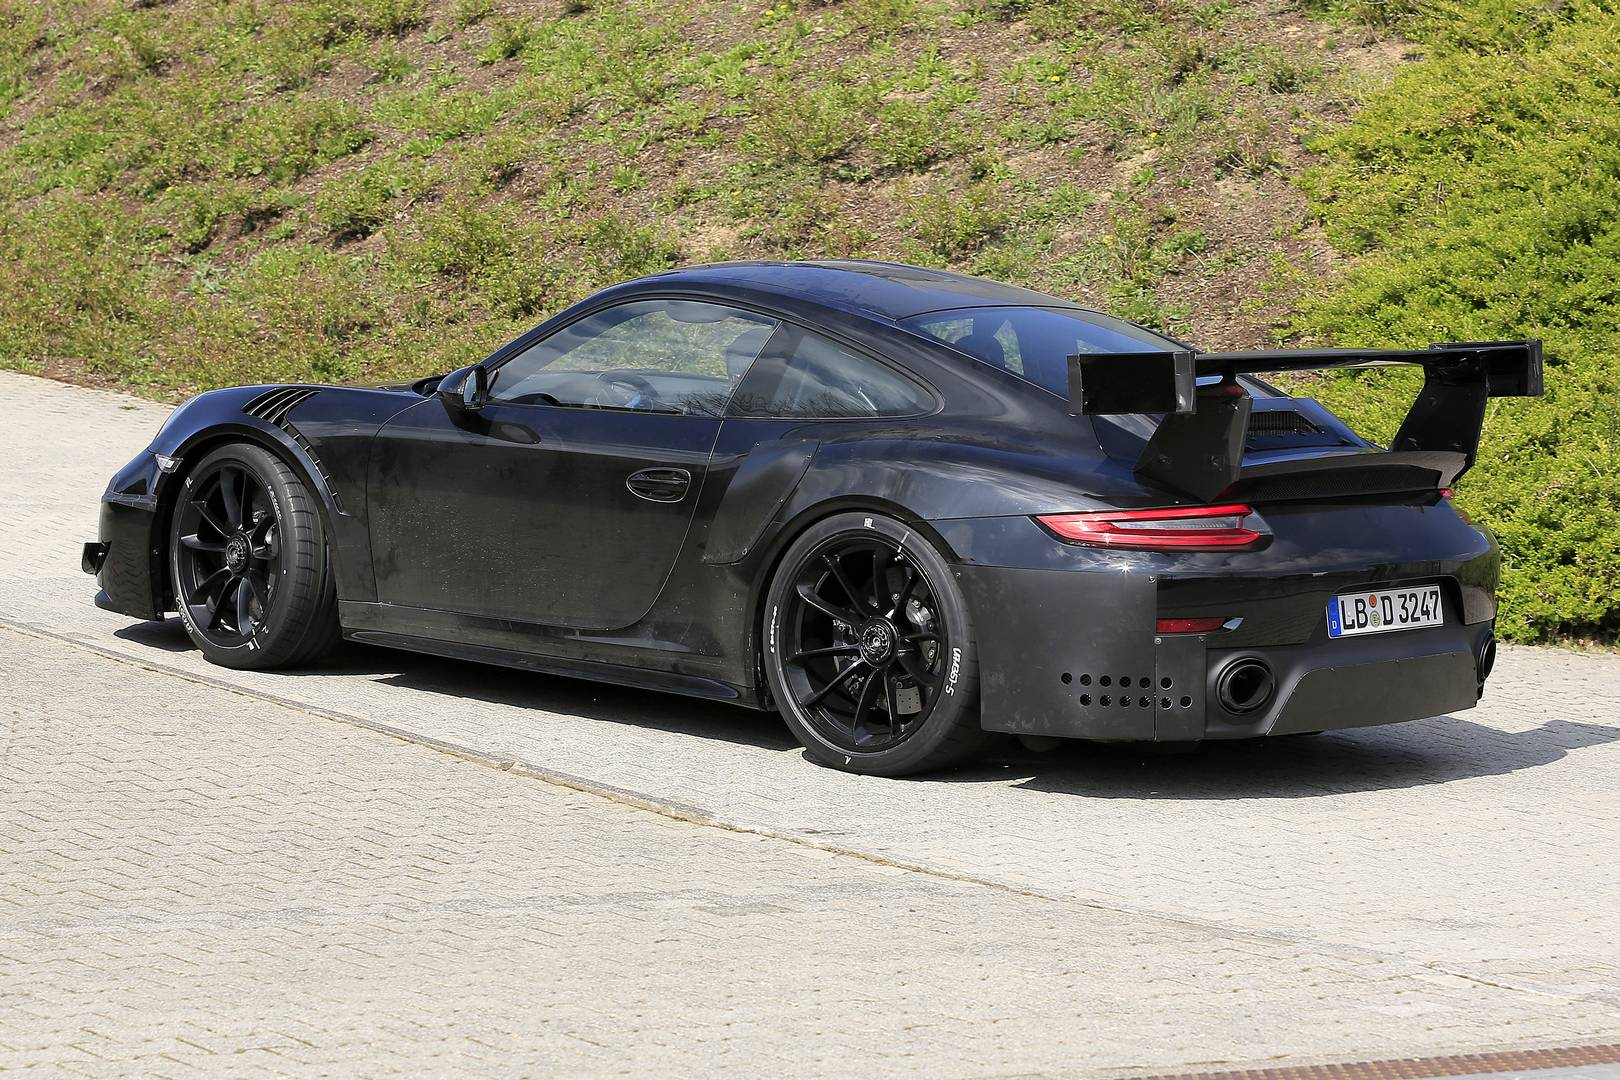 2018 Porsche 911 GT2 RS Spy Shots at the Nurburgring - GTspirit